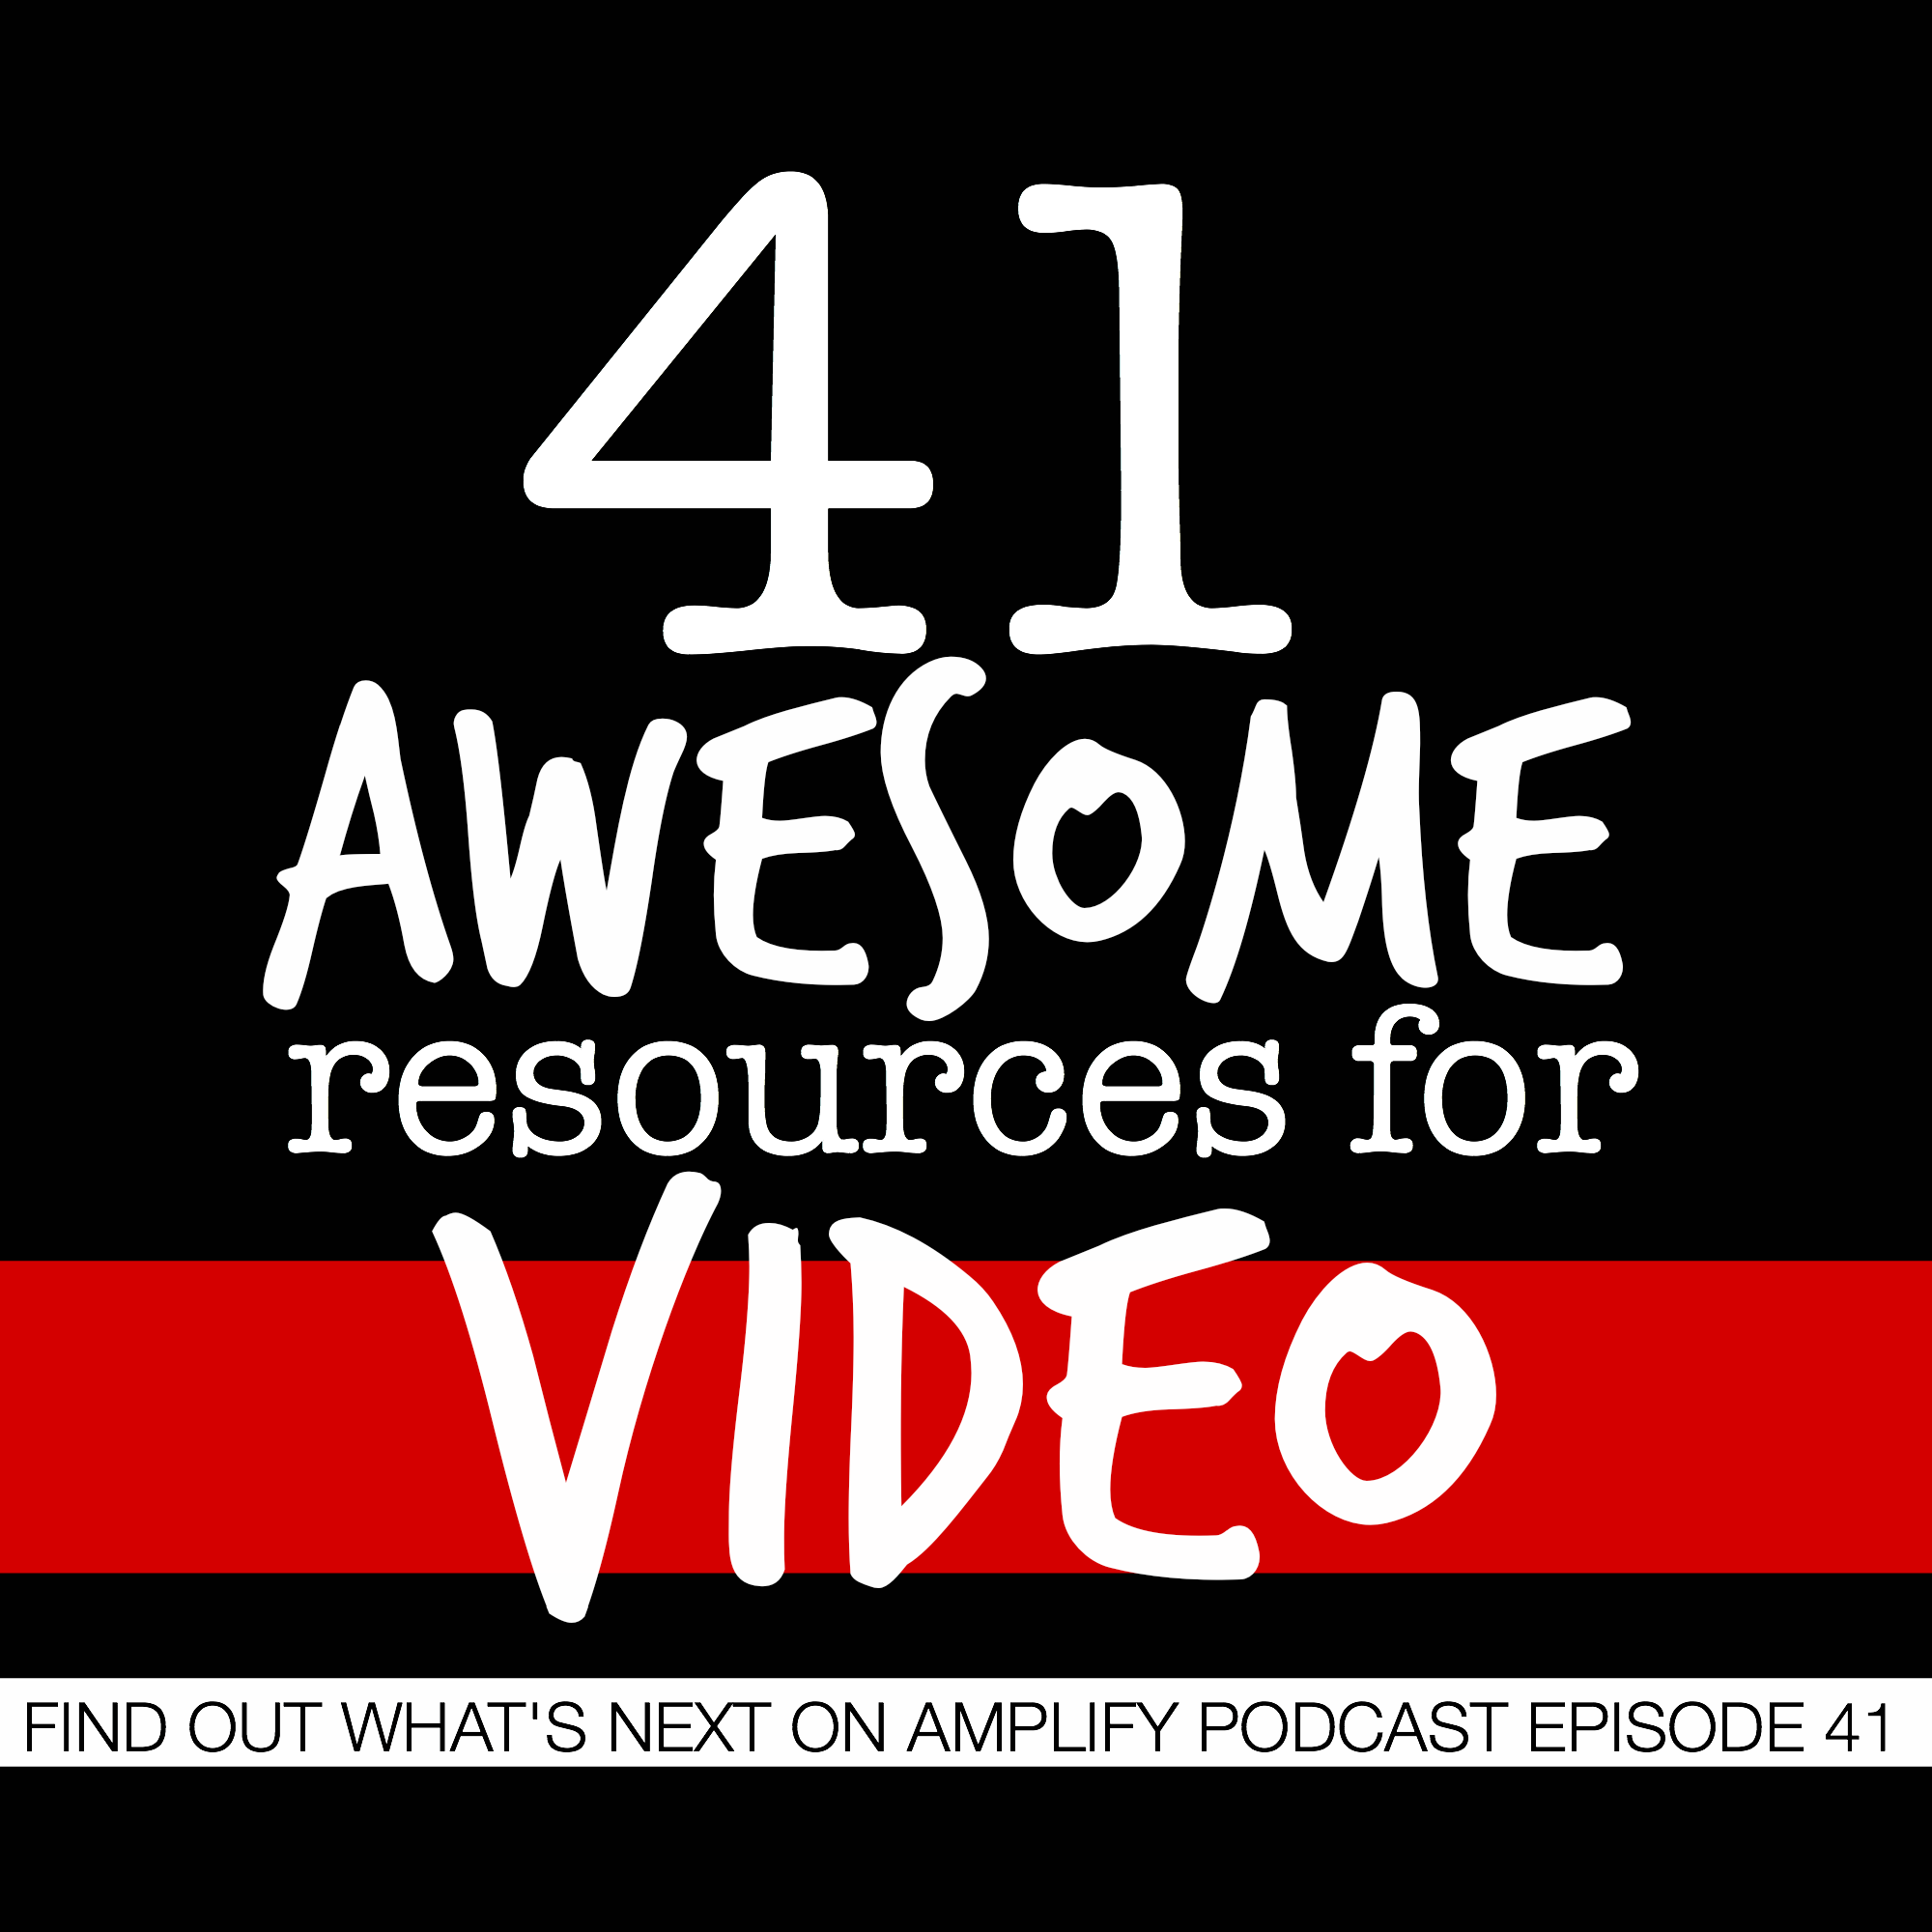 41 Awesome Resources for Video (Episode 41)